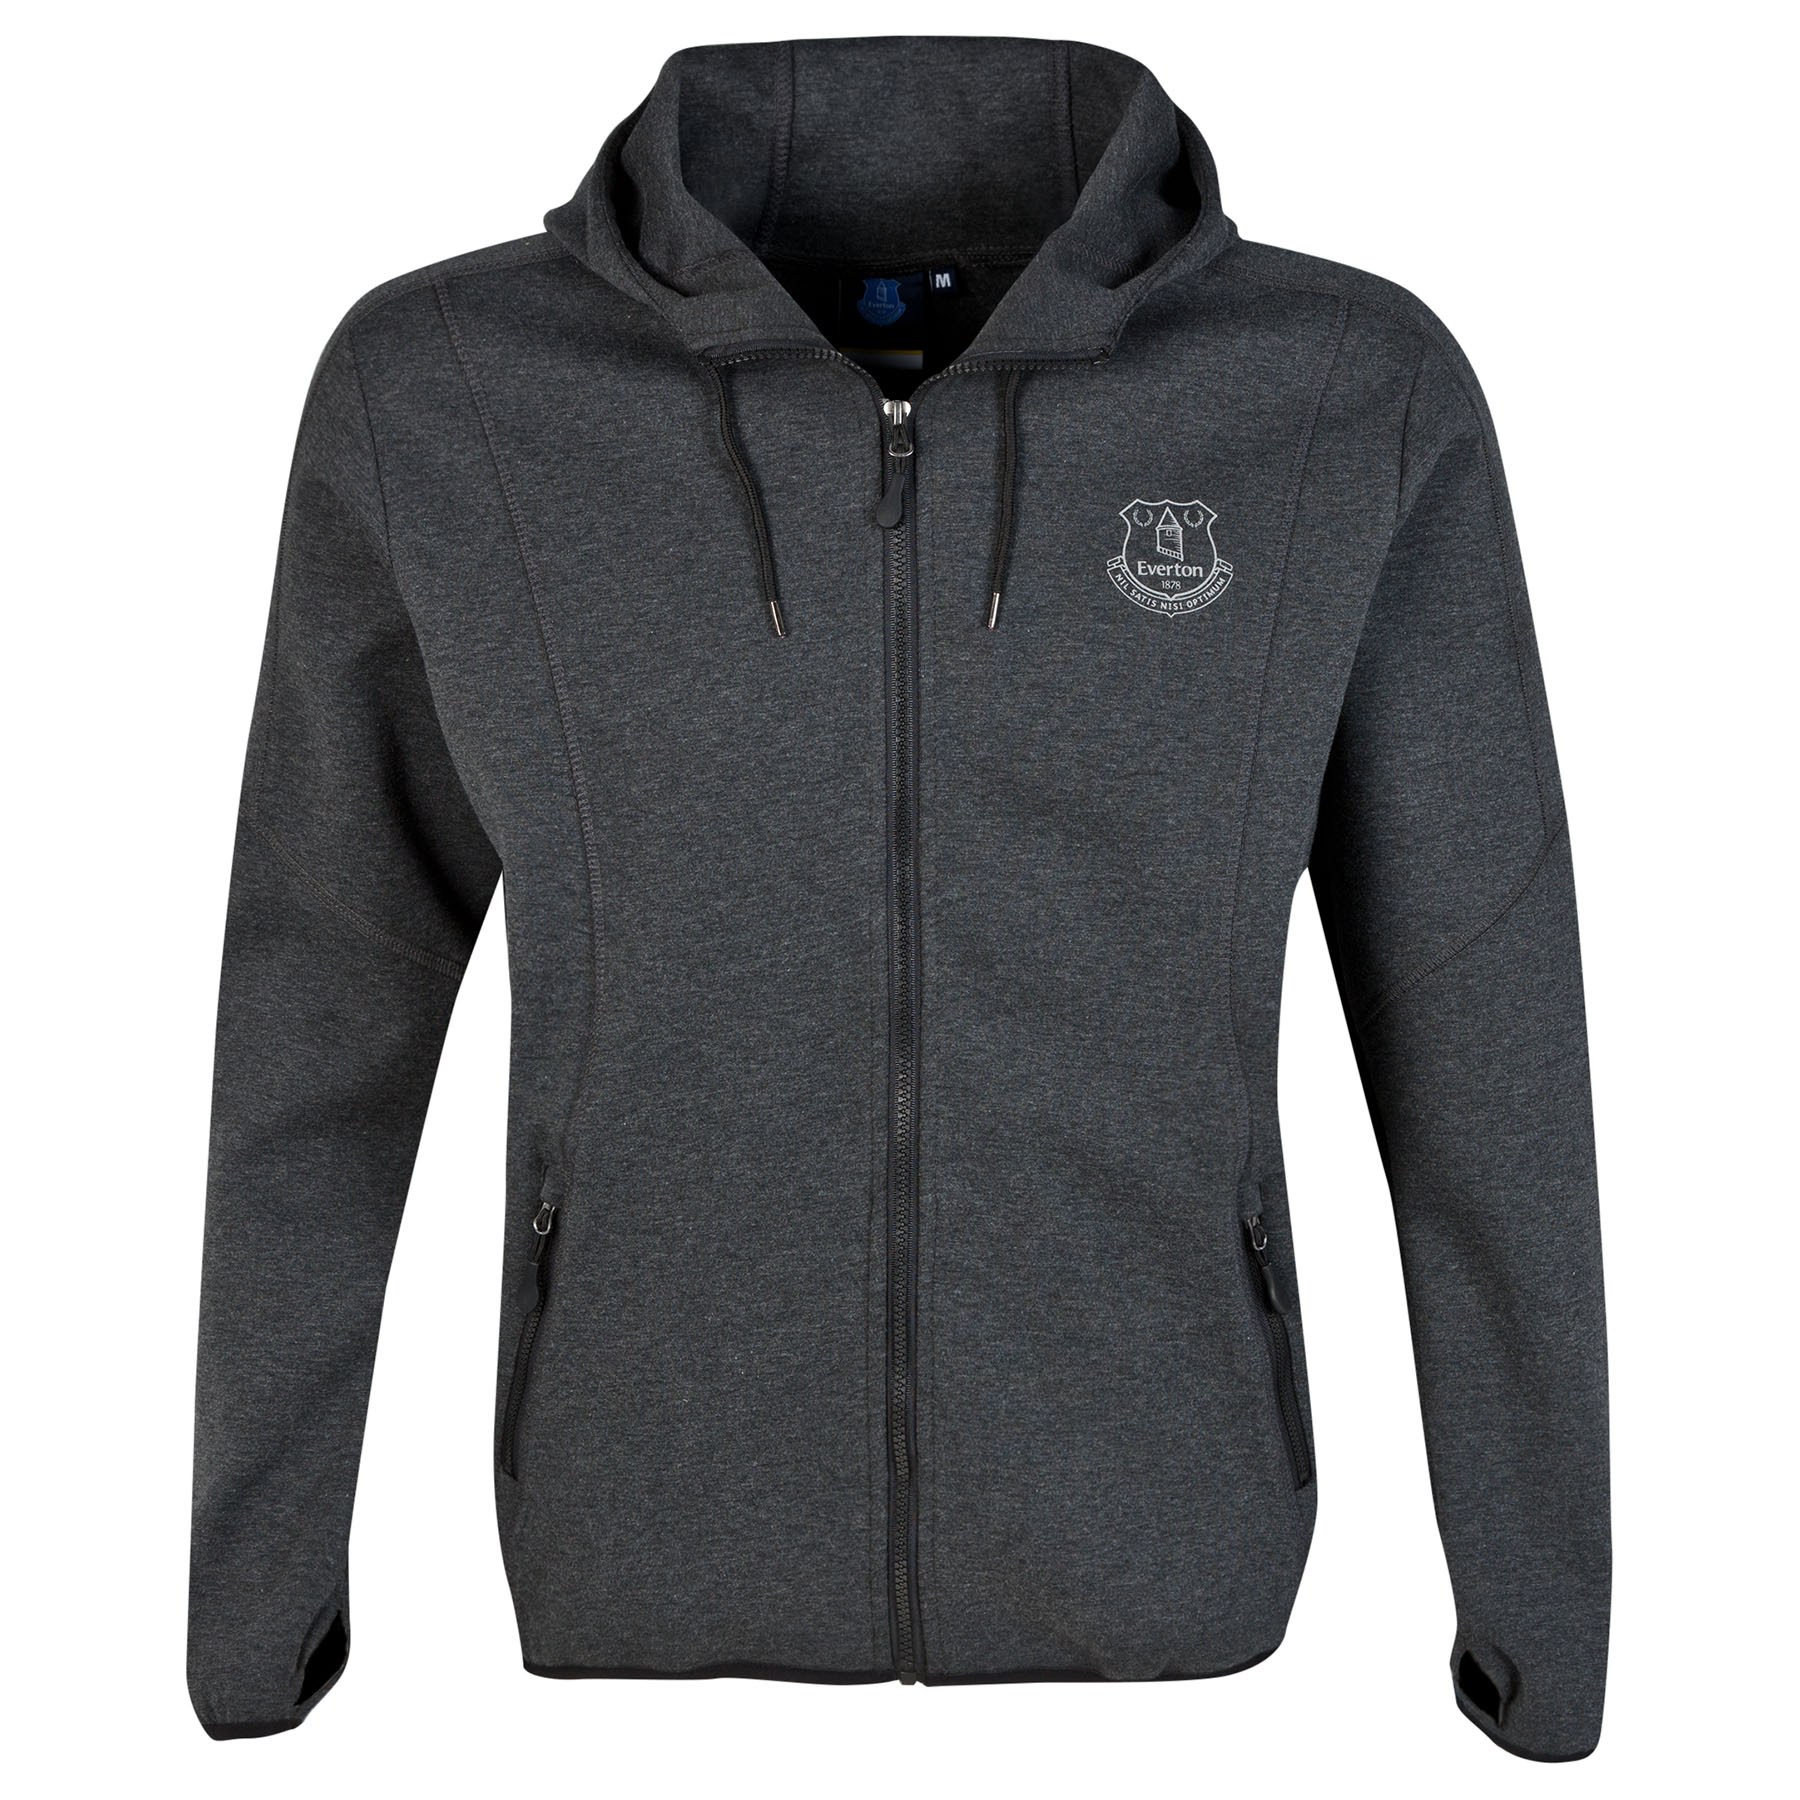 Everton Technical Hoodie - Charcoal - Mens